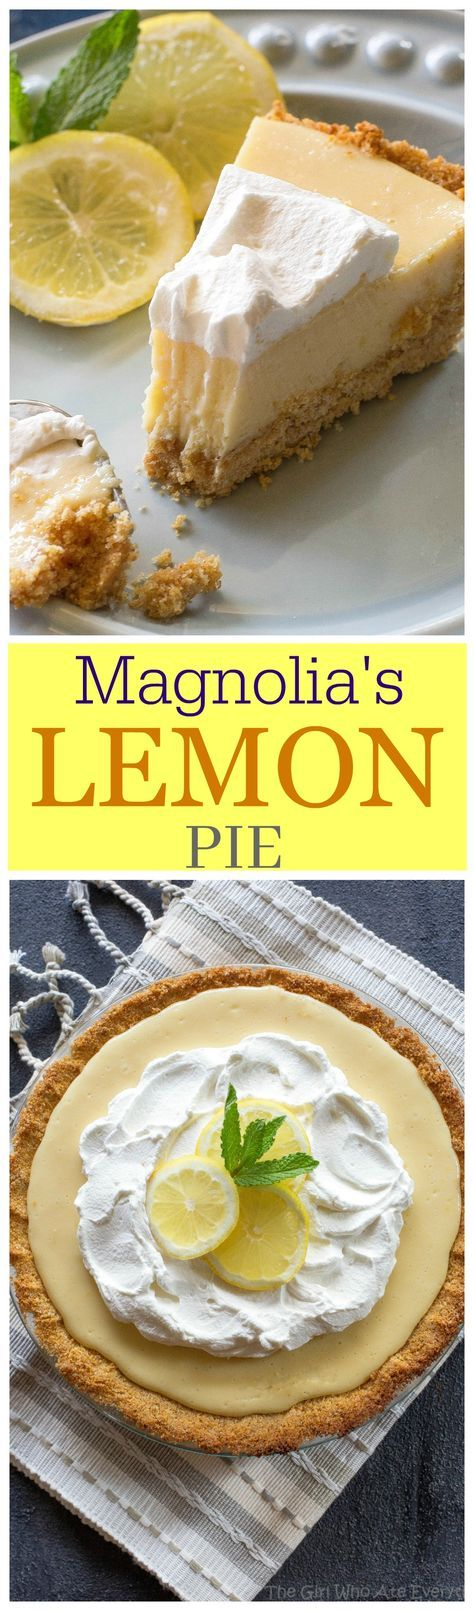 Magnolia's Lemon Pie #sweetpie